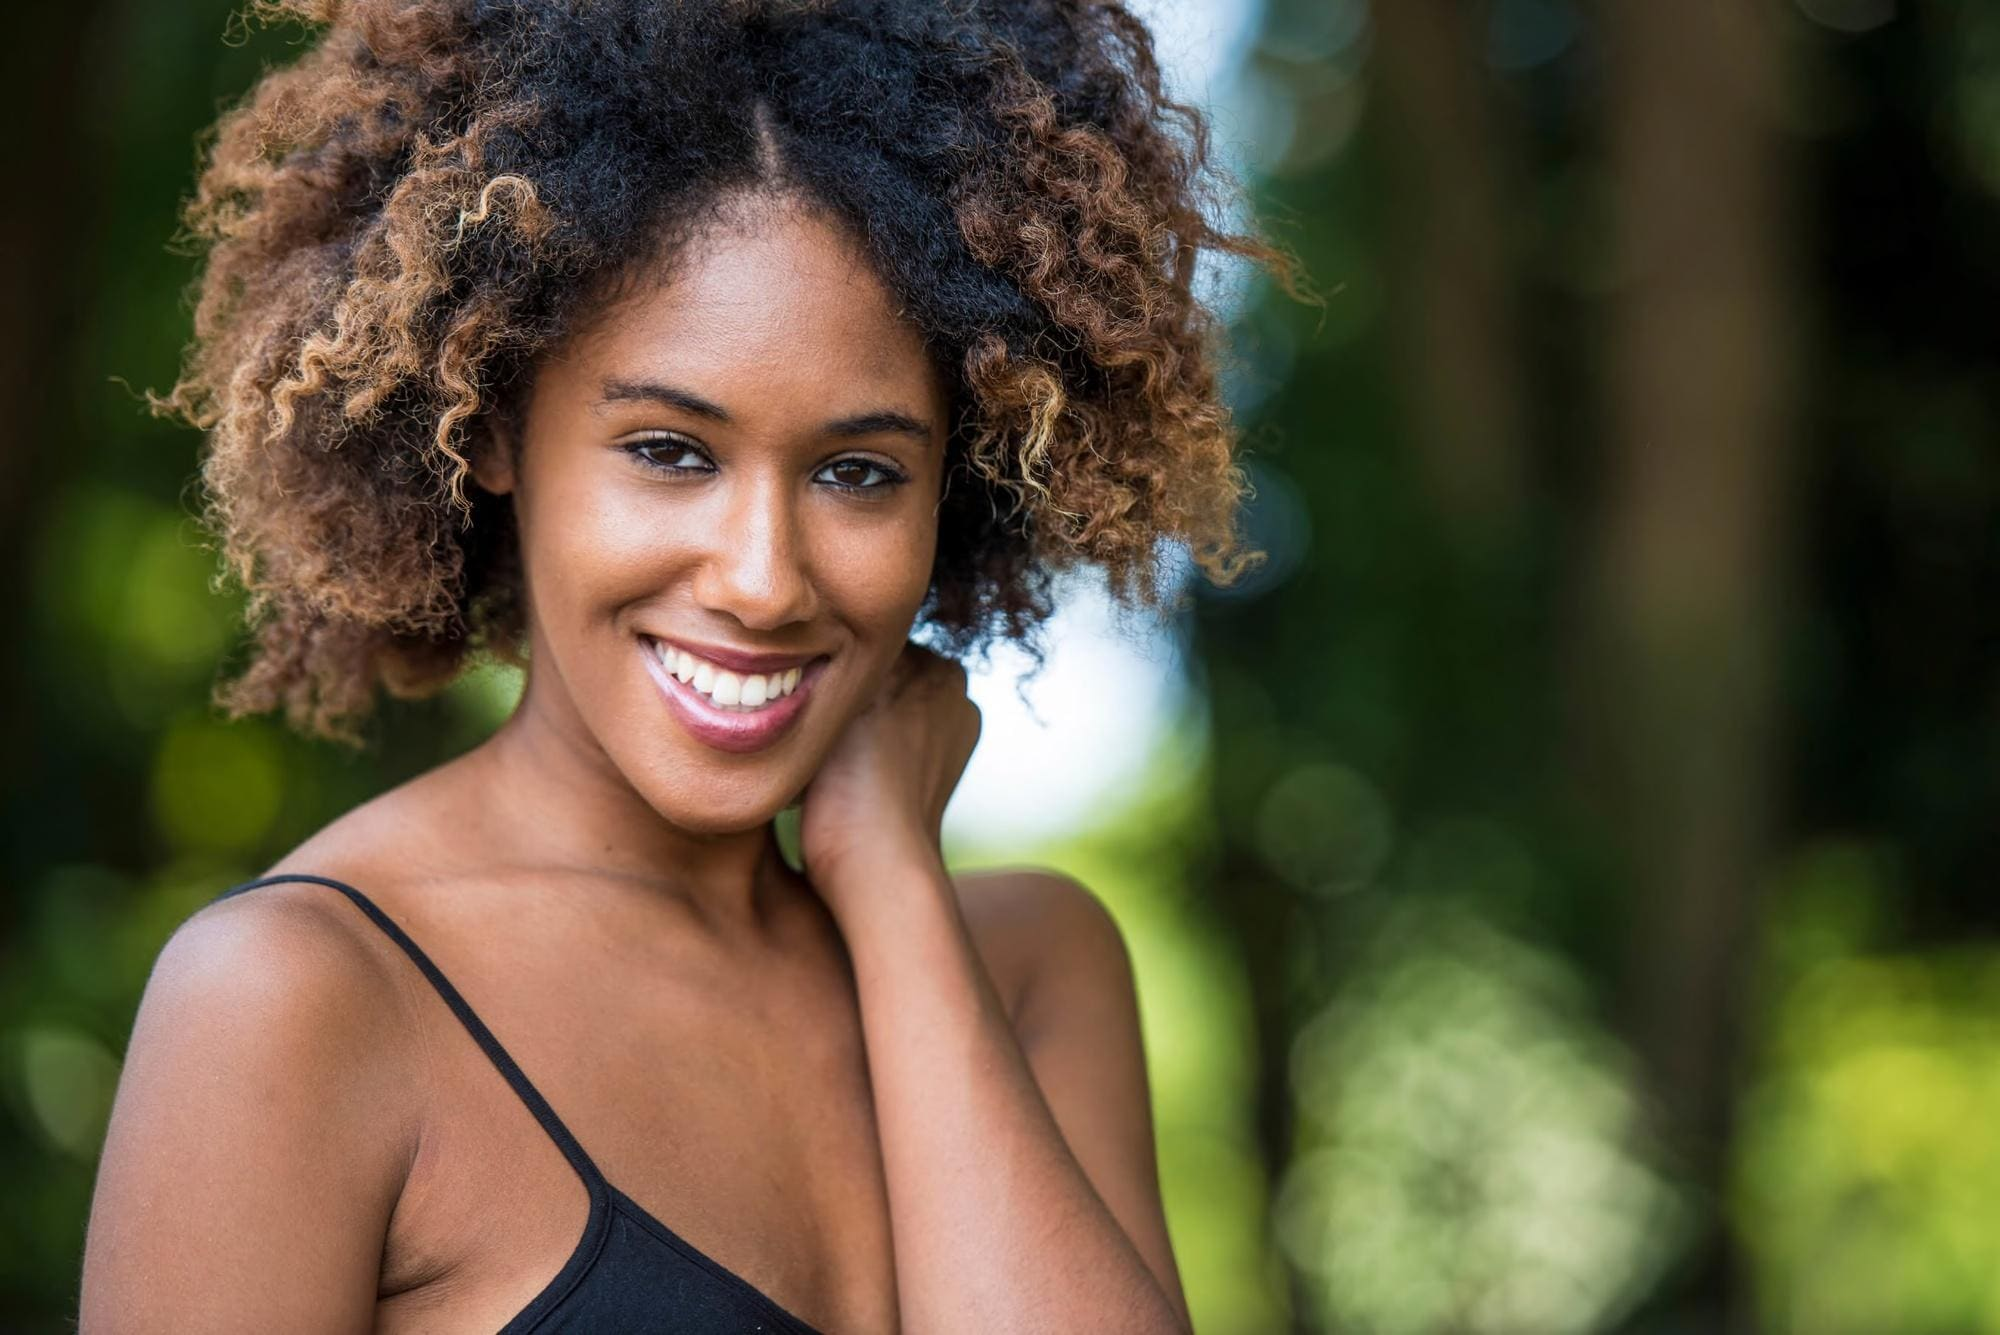 Hair Colors For Dark Skin 20 Really Flattering Looks